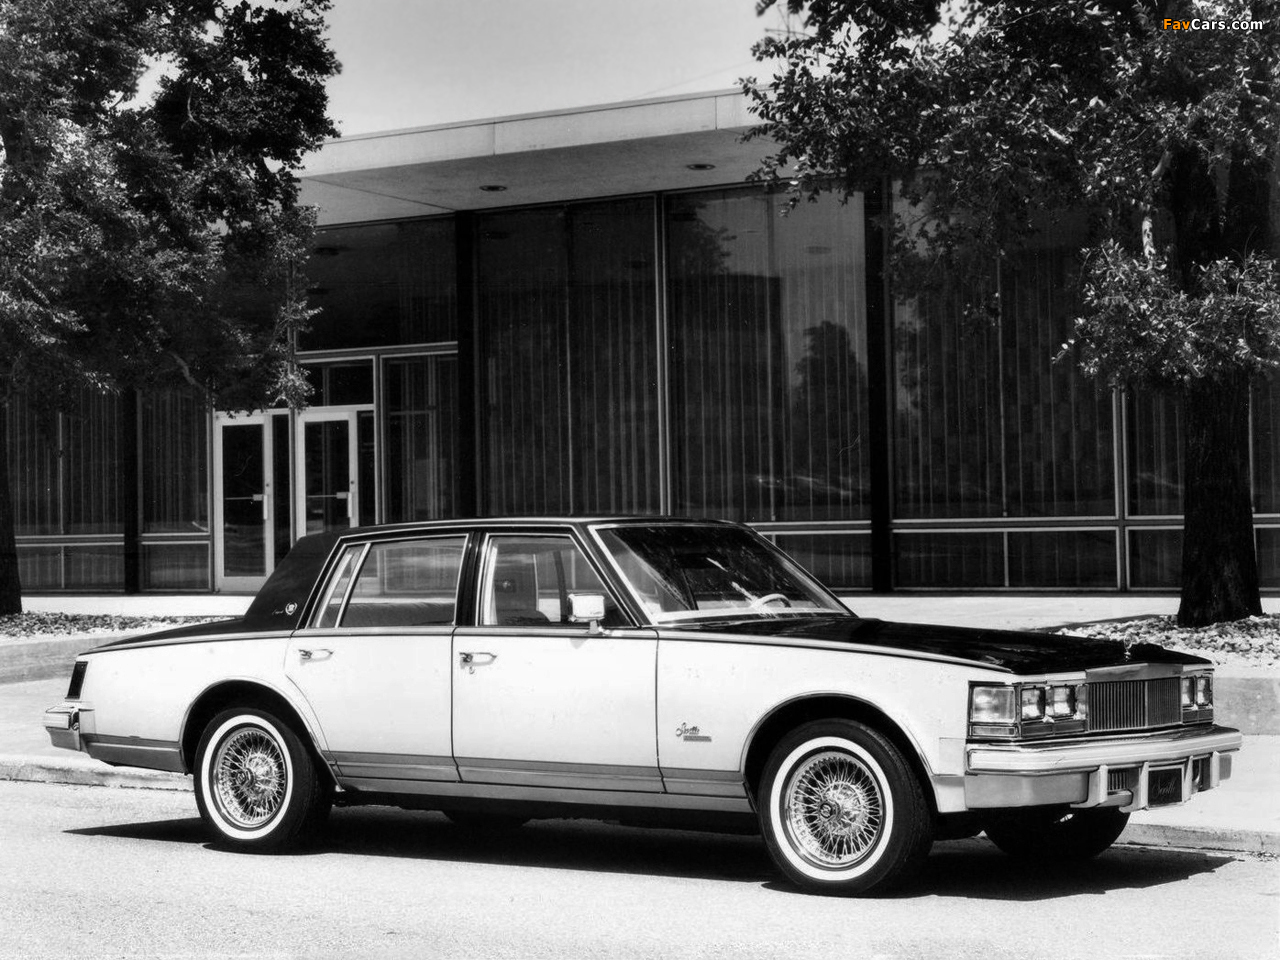 cadillac_seville_1975_photos_4.jpg